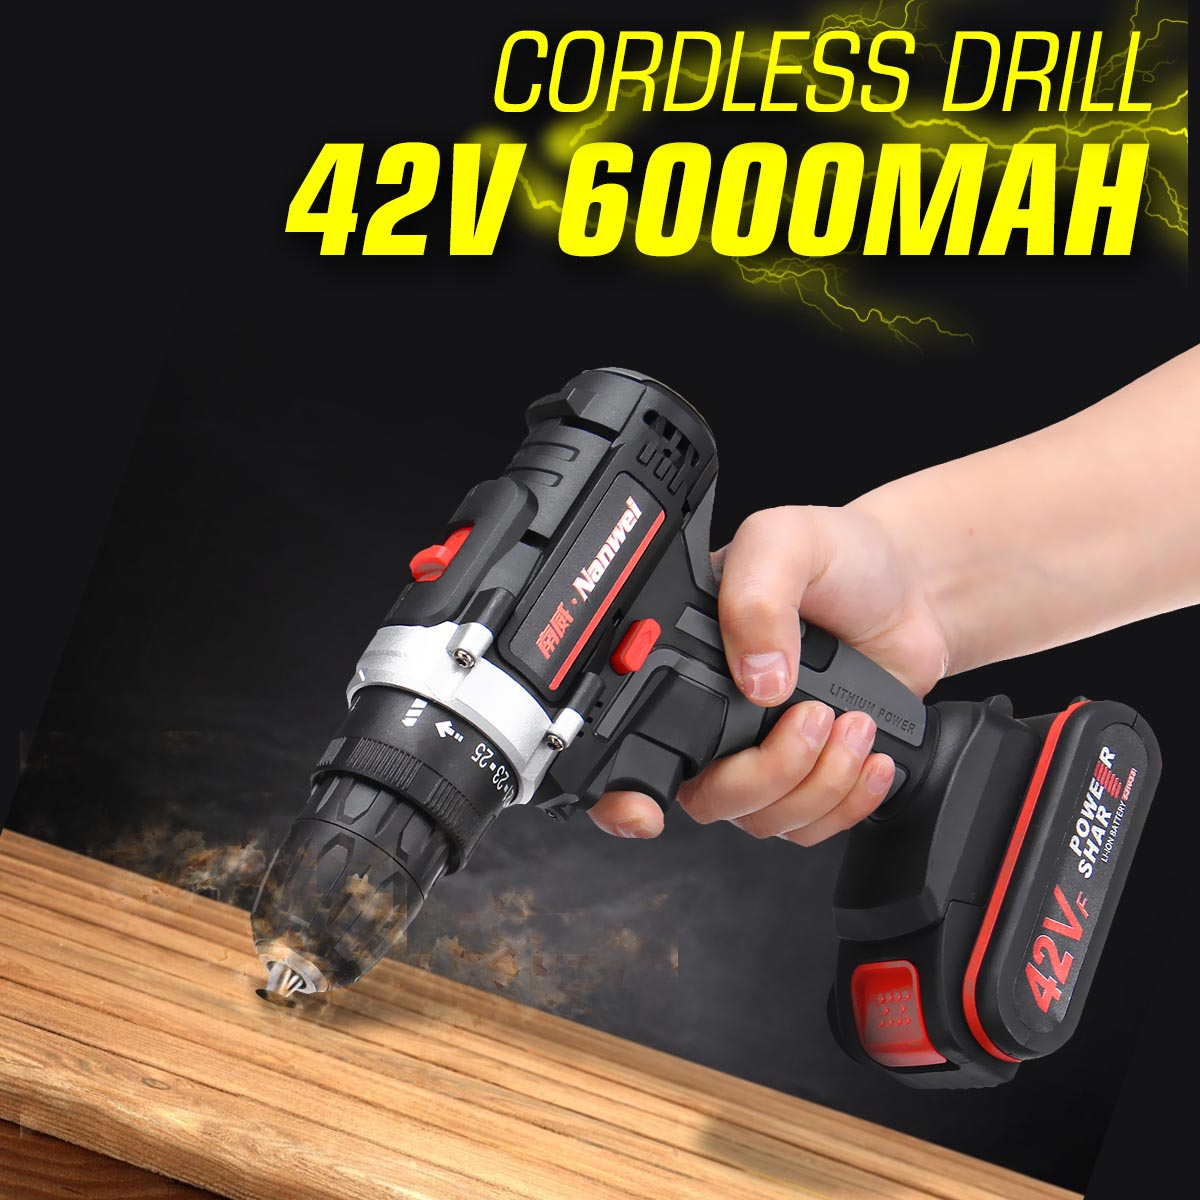 42V 6000mAh Rechargeable Lithium Battery Double Speed Cordless Drill Household Electric Drill Wrench Powerful Driver Power Tools42V 6000mAh Rechargeable Lithium Battery Double Speed Cordless Drill Household Electric Drill Wrench Powerful Driver Power Tools